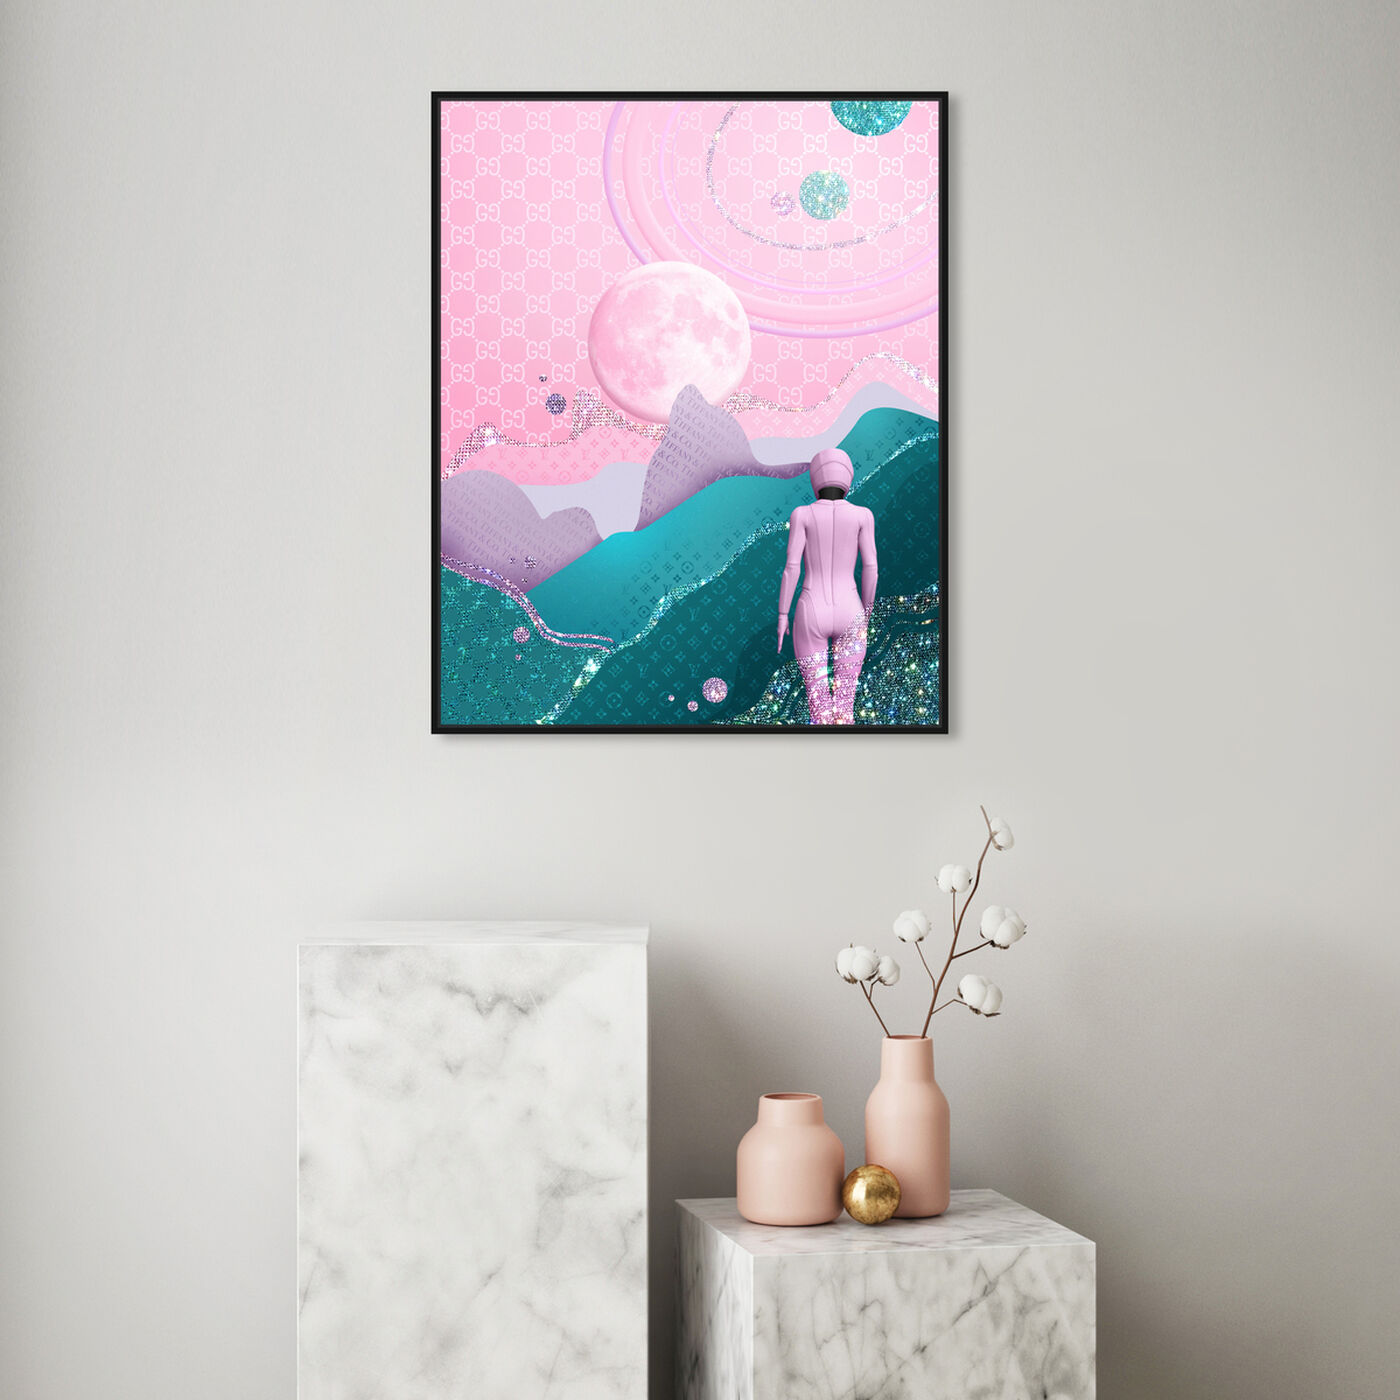 Hanging view of Lead me into the light featuring nature and landscape and skyscapes art.